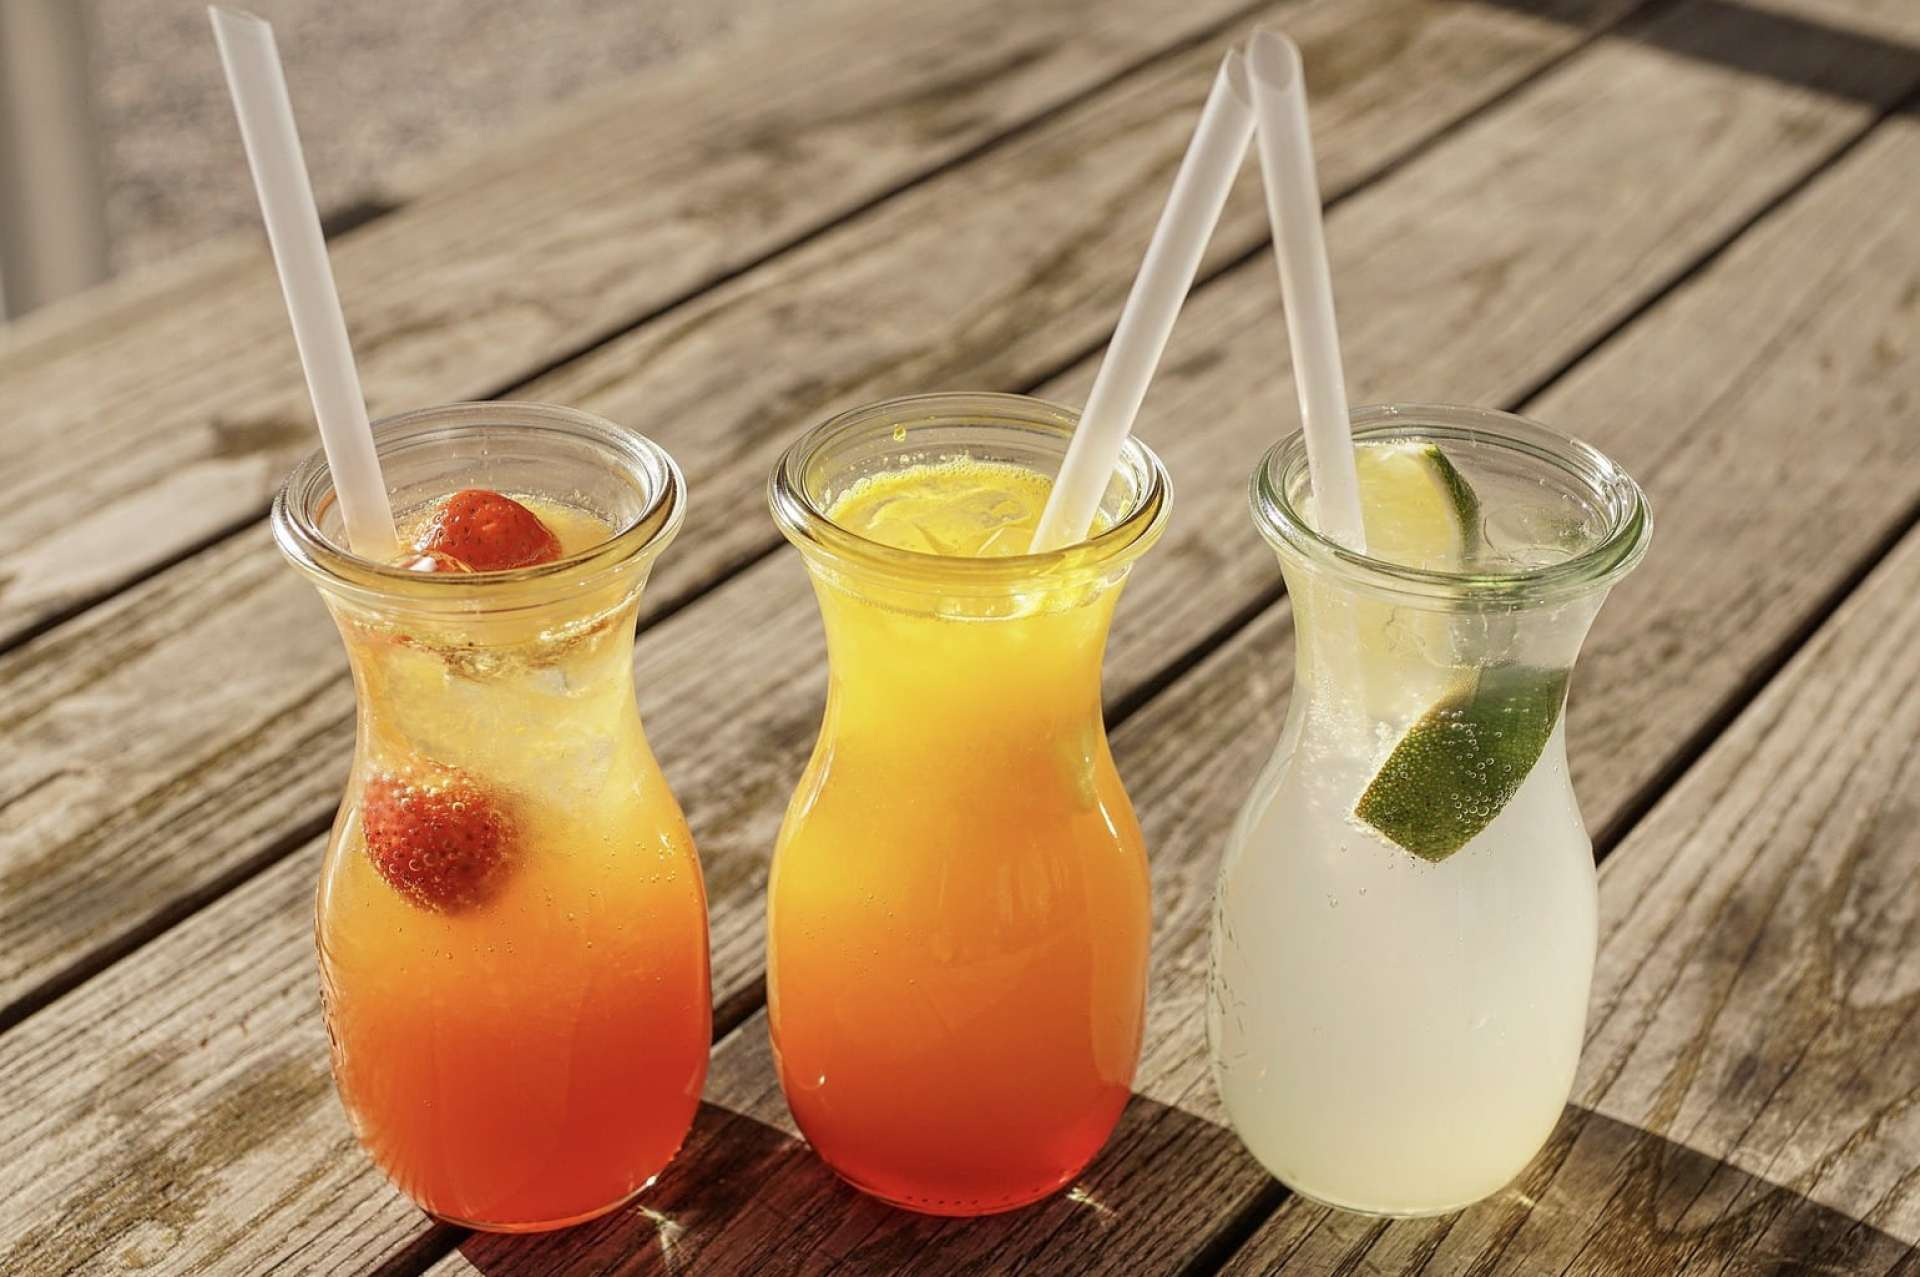 Aguas frescas - water is usually drunk flavored in Mexico